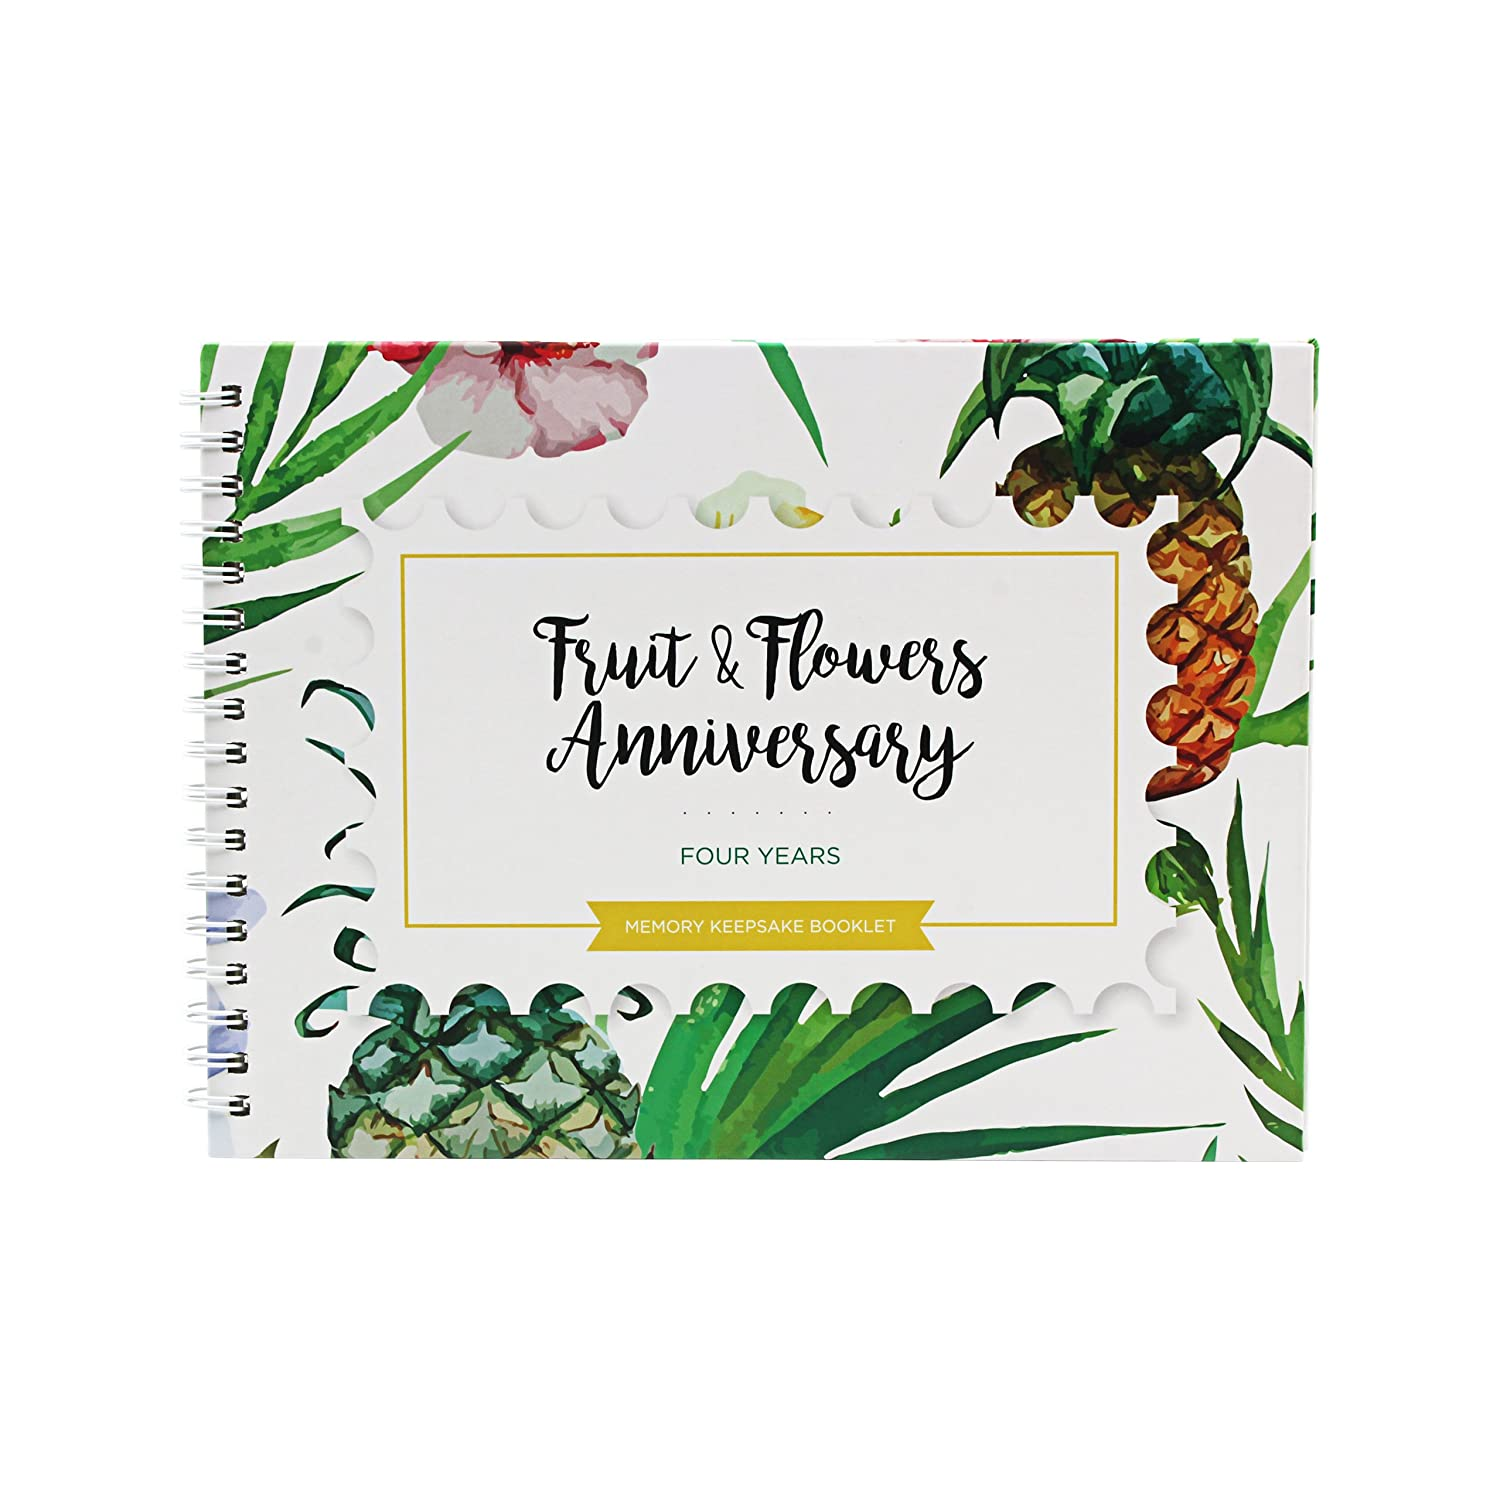 4th Wedding Anniversary Gifts For Couples Four Years Memory